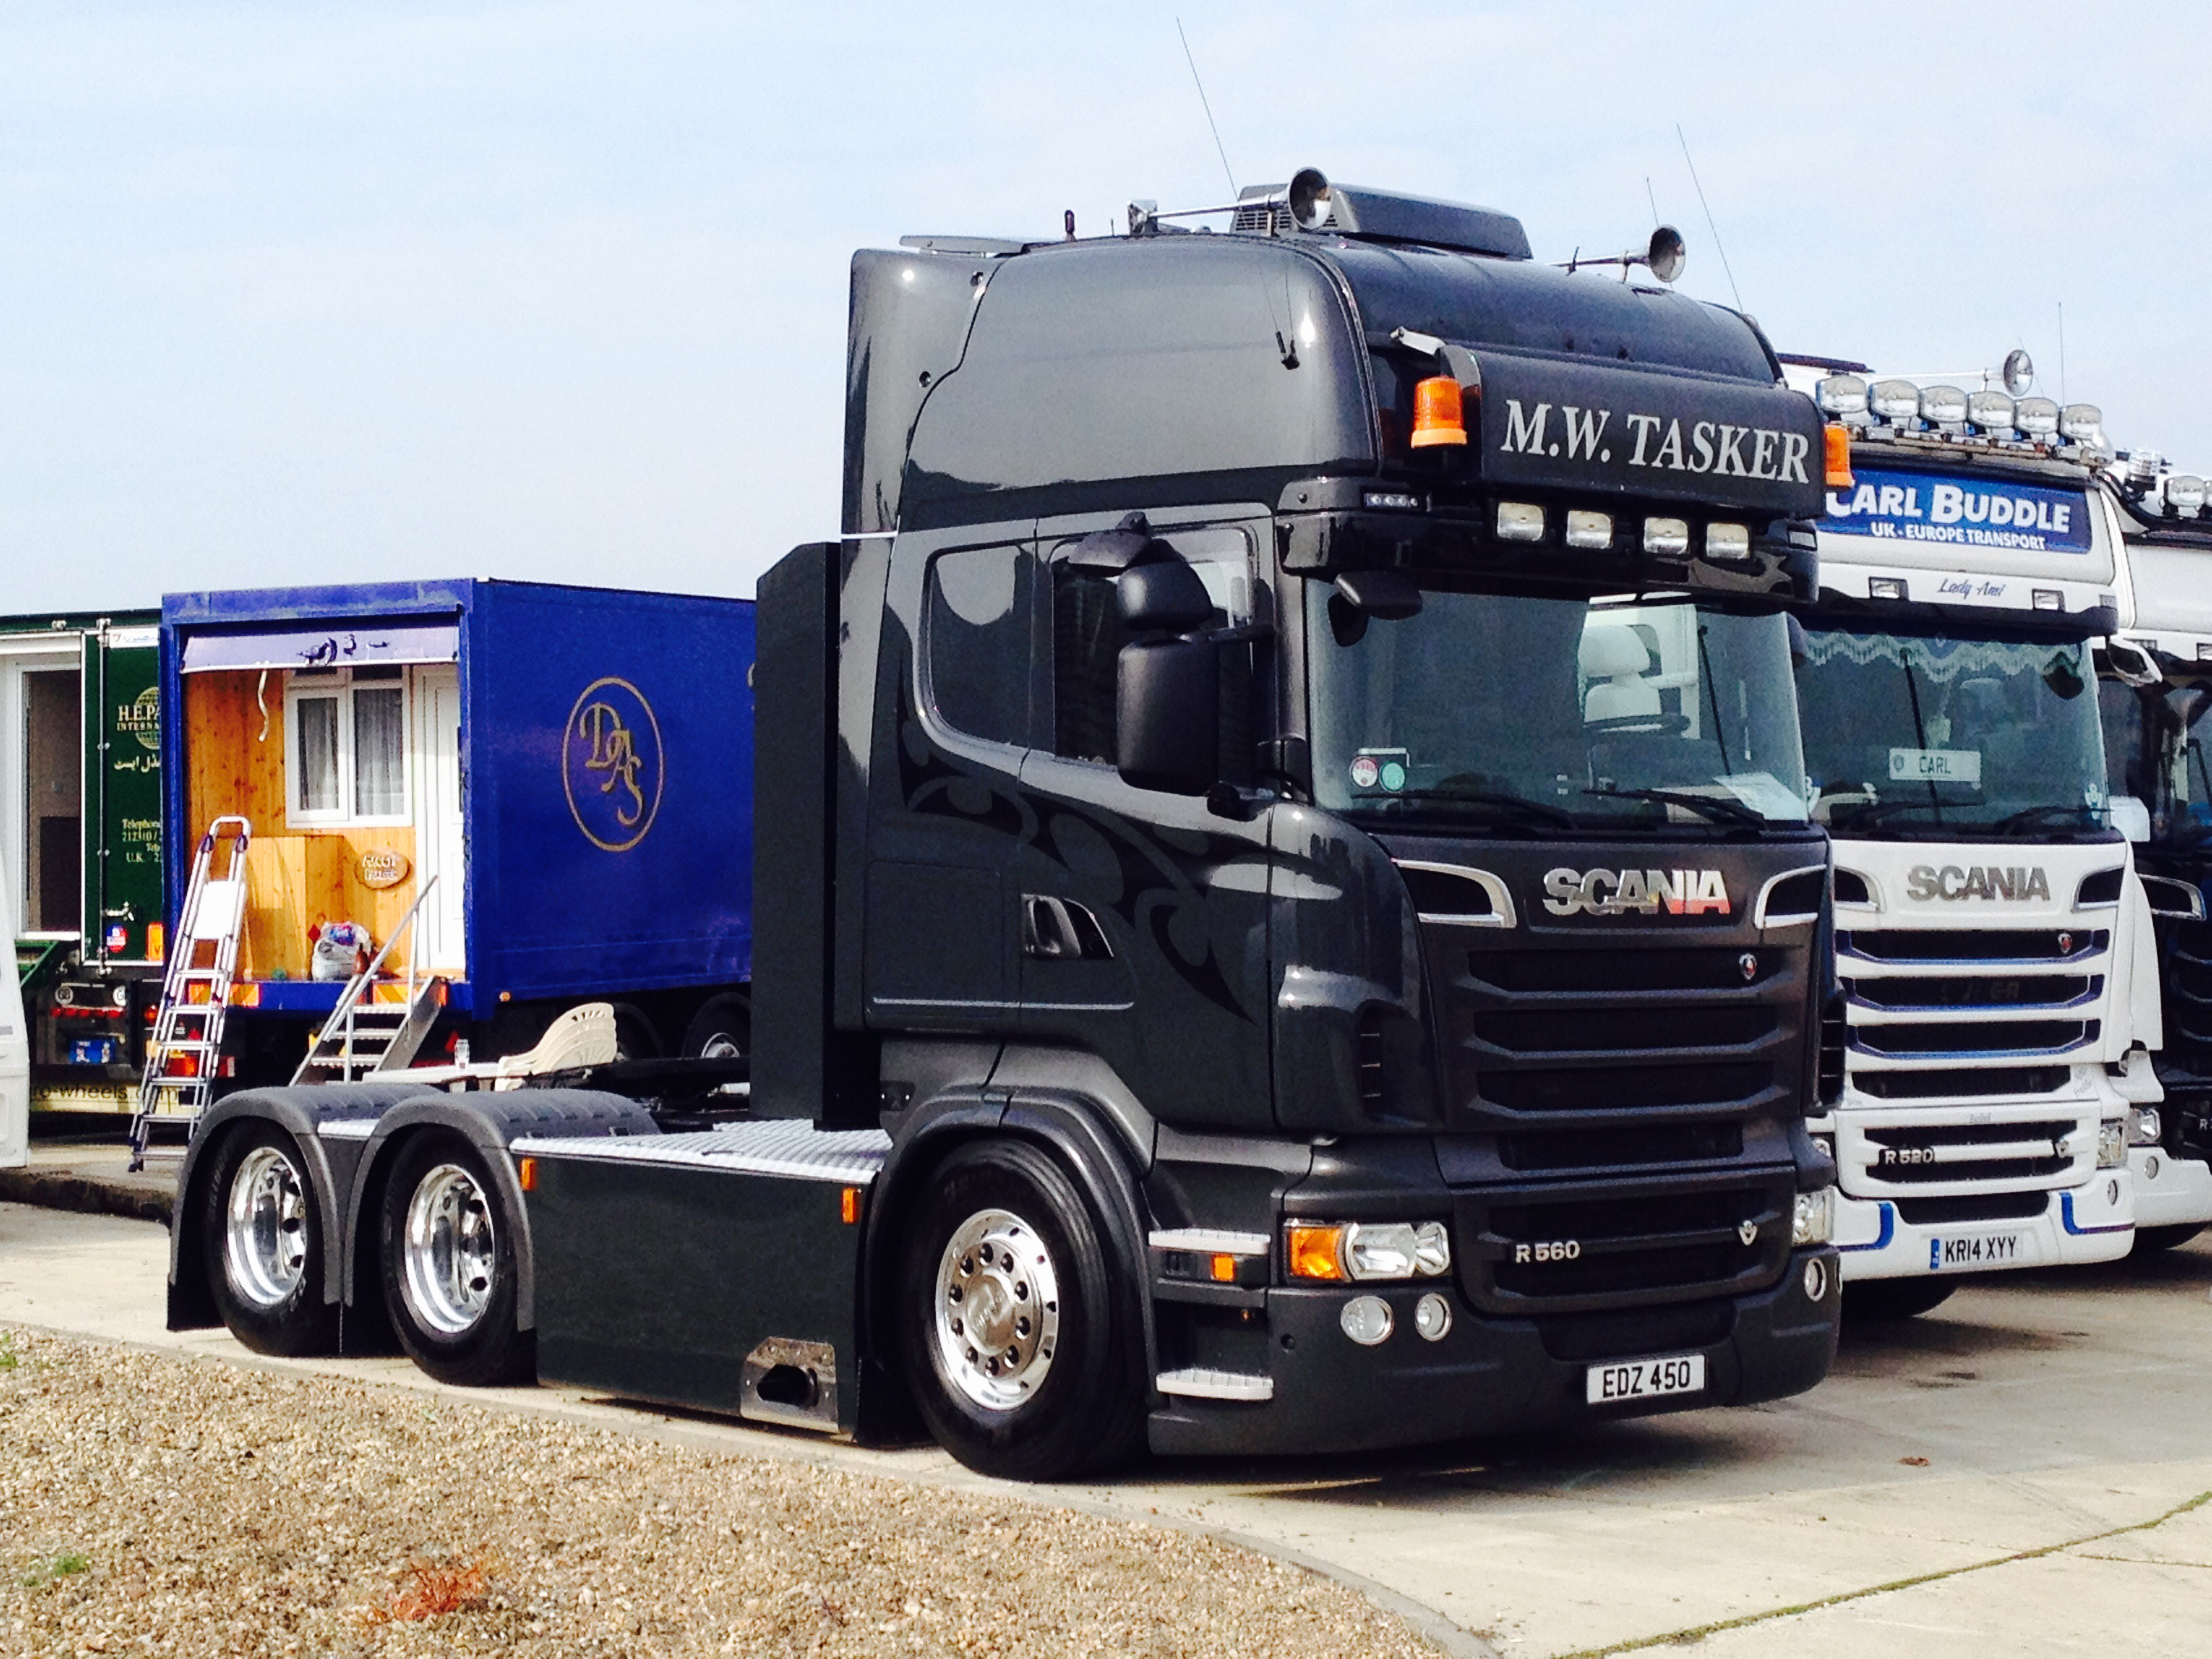 Special Scania – For Sale!! | www.truckblog.co.uk